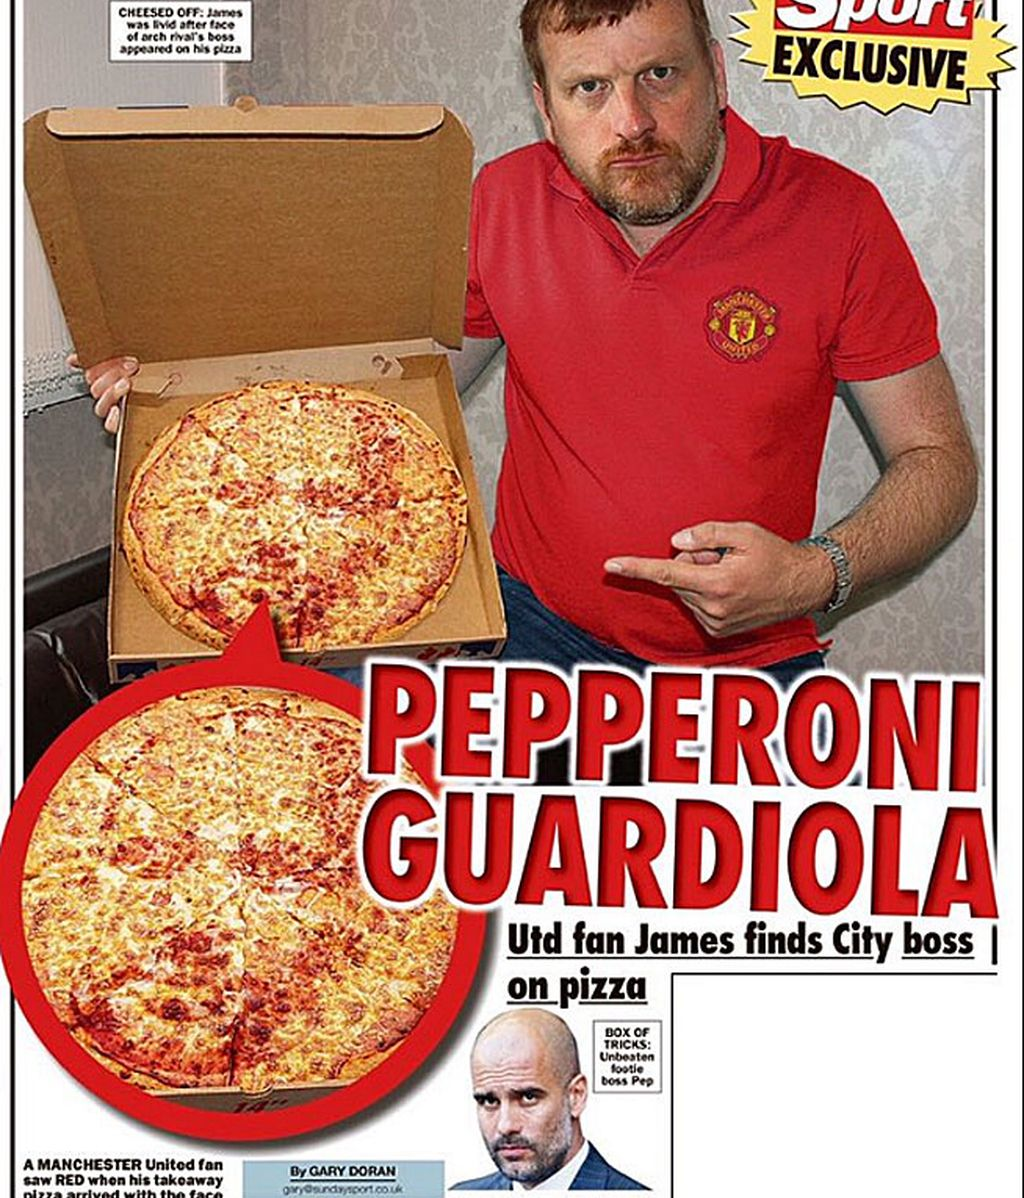 Guardiola pizza